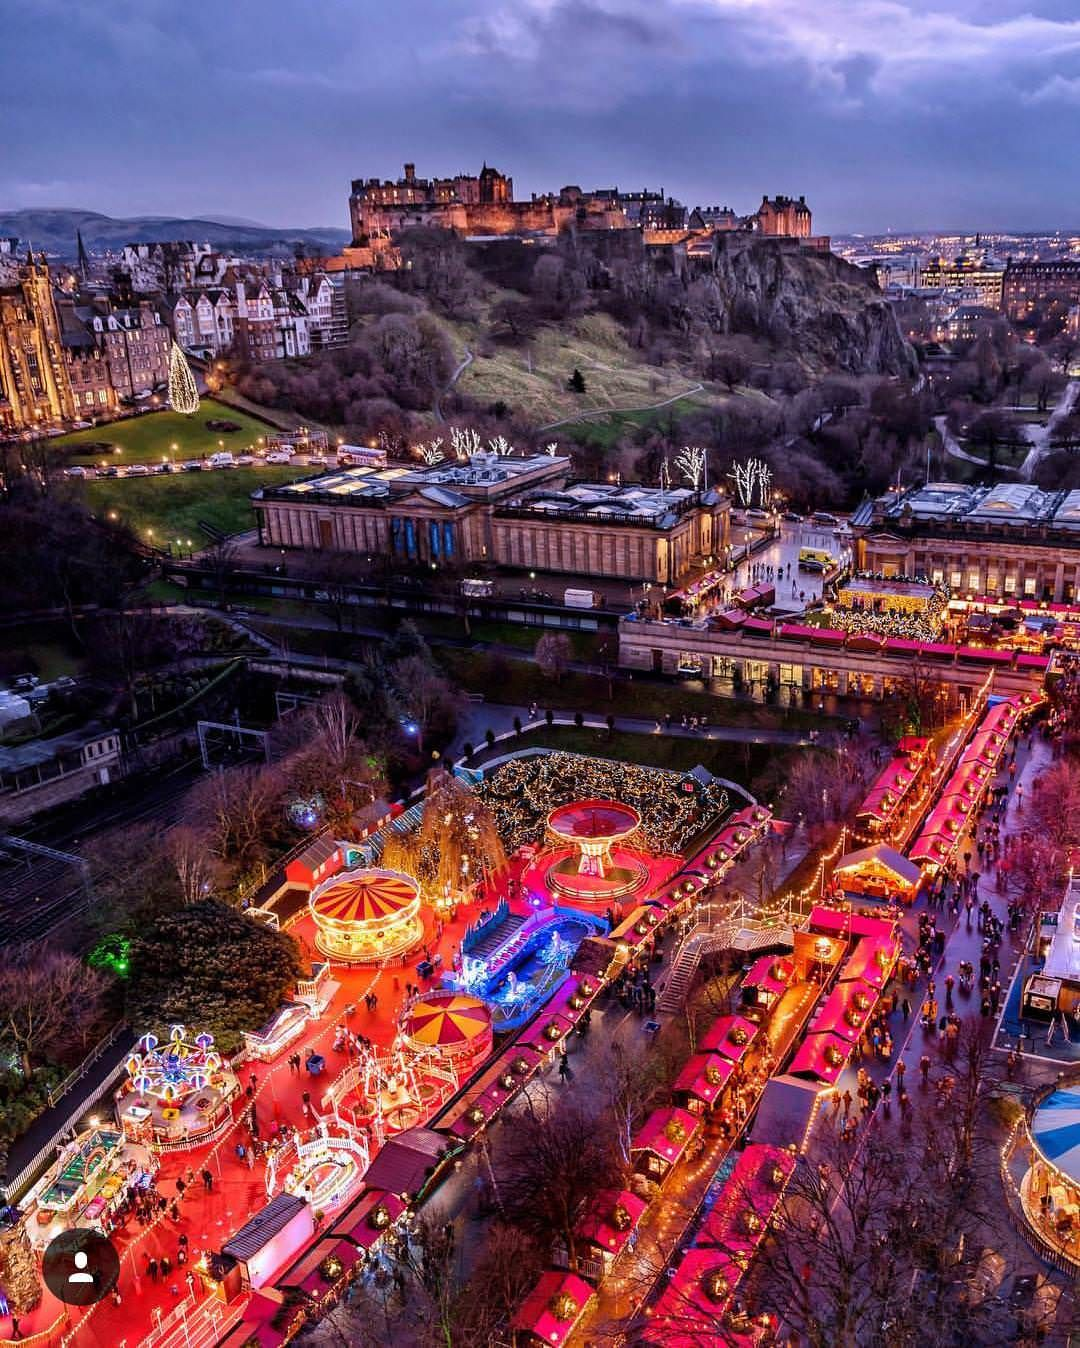 The Christmas market in Edinburgh, Scotland in 2020